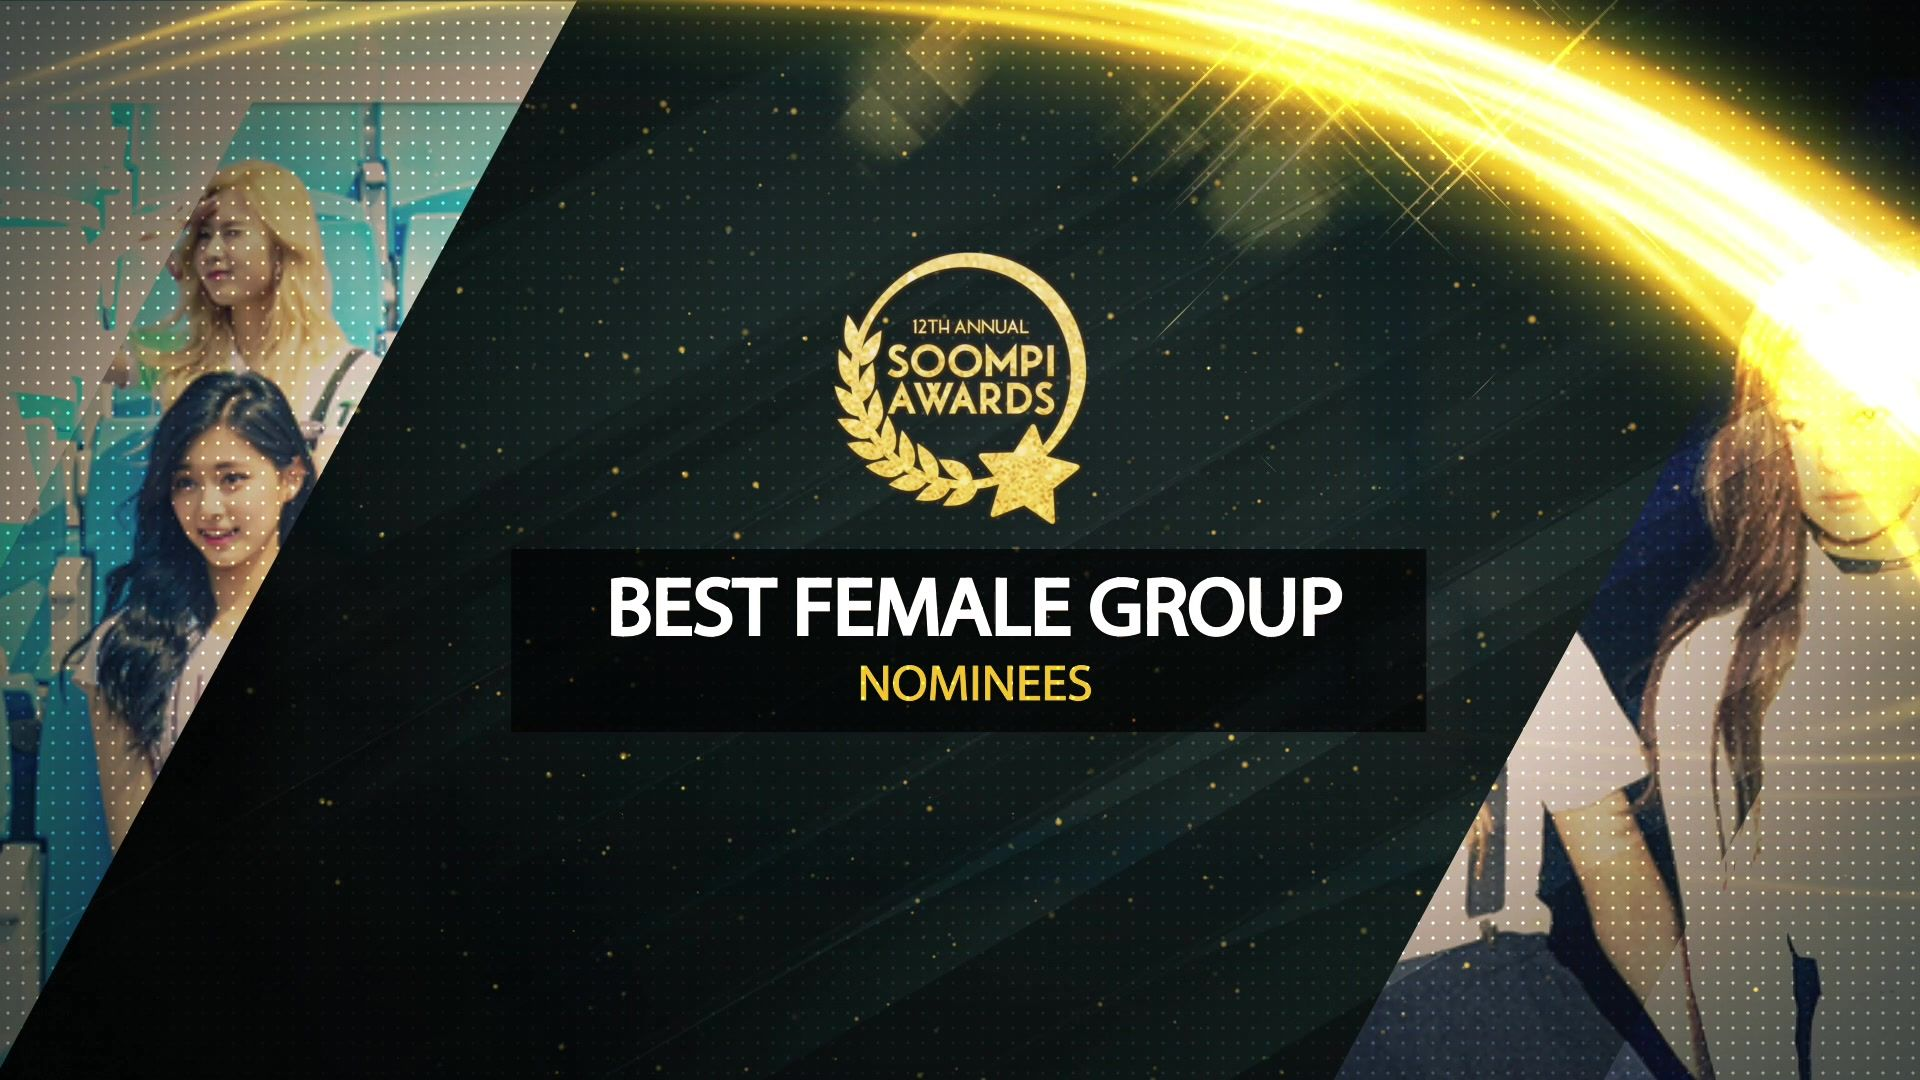 12th Annual Soompi Awards Episode 5: Best Female Group